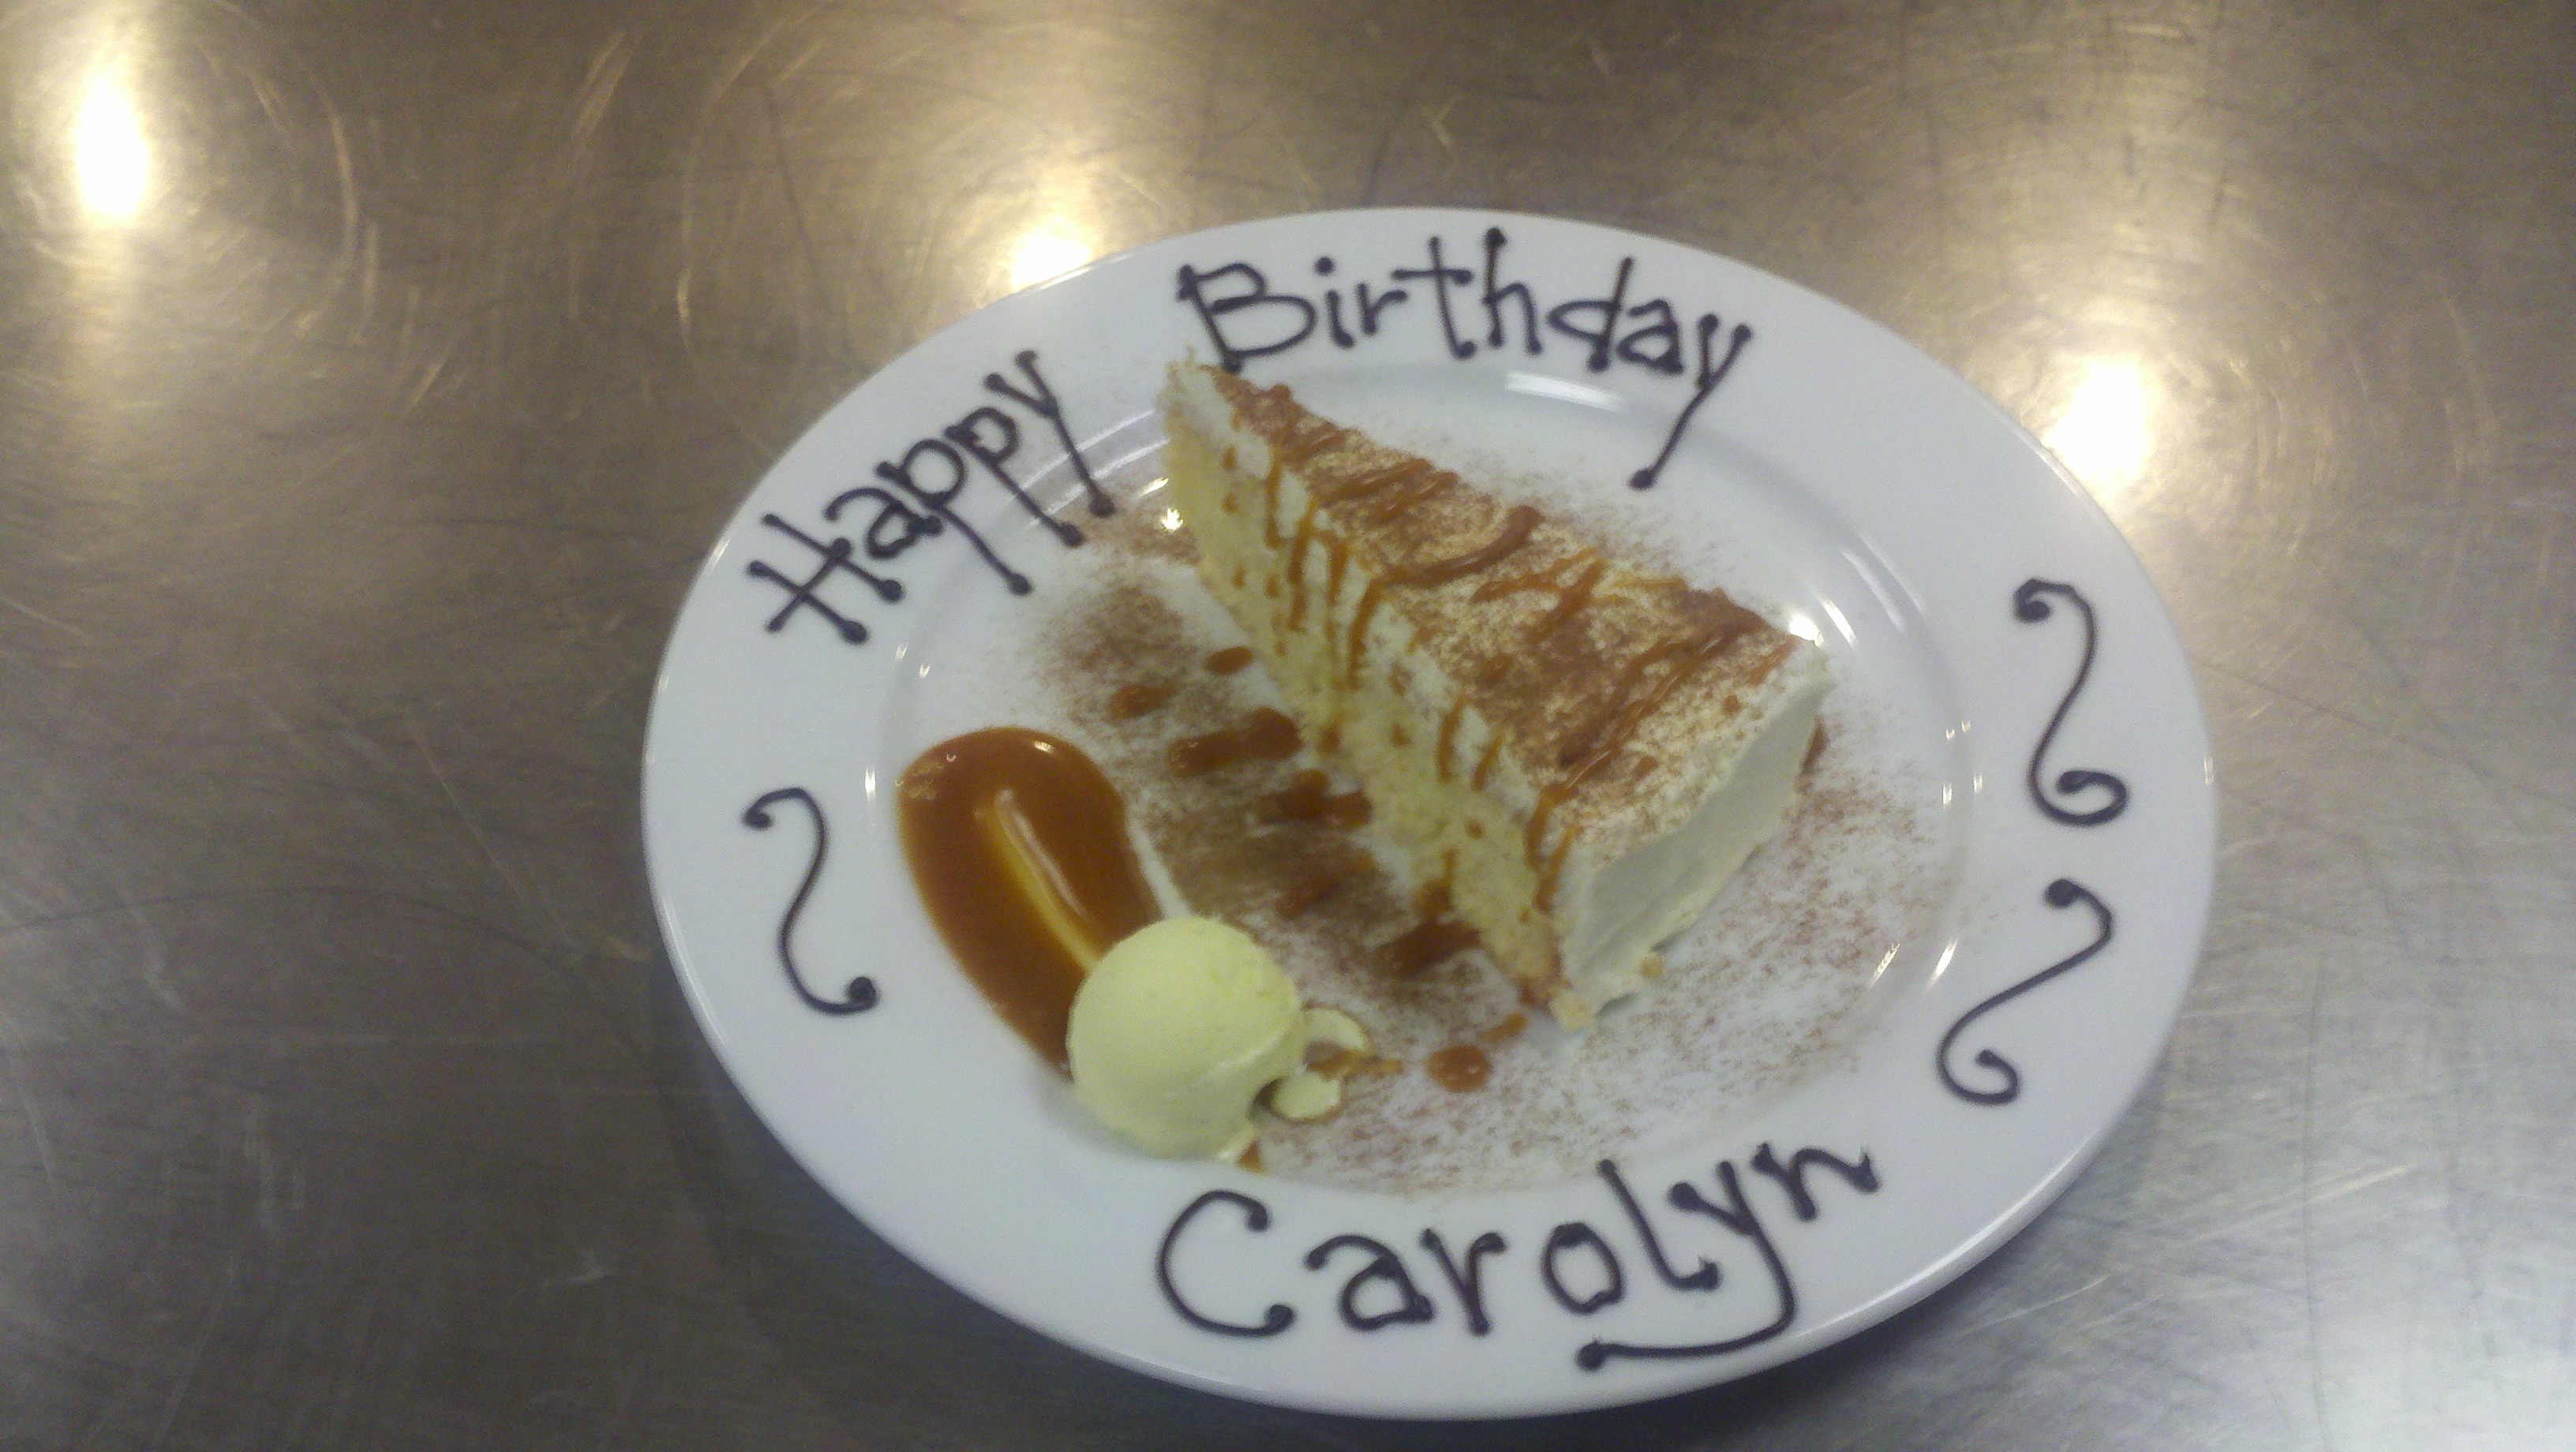 happy birthday carolyn cake